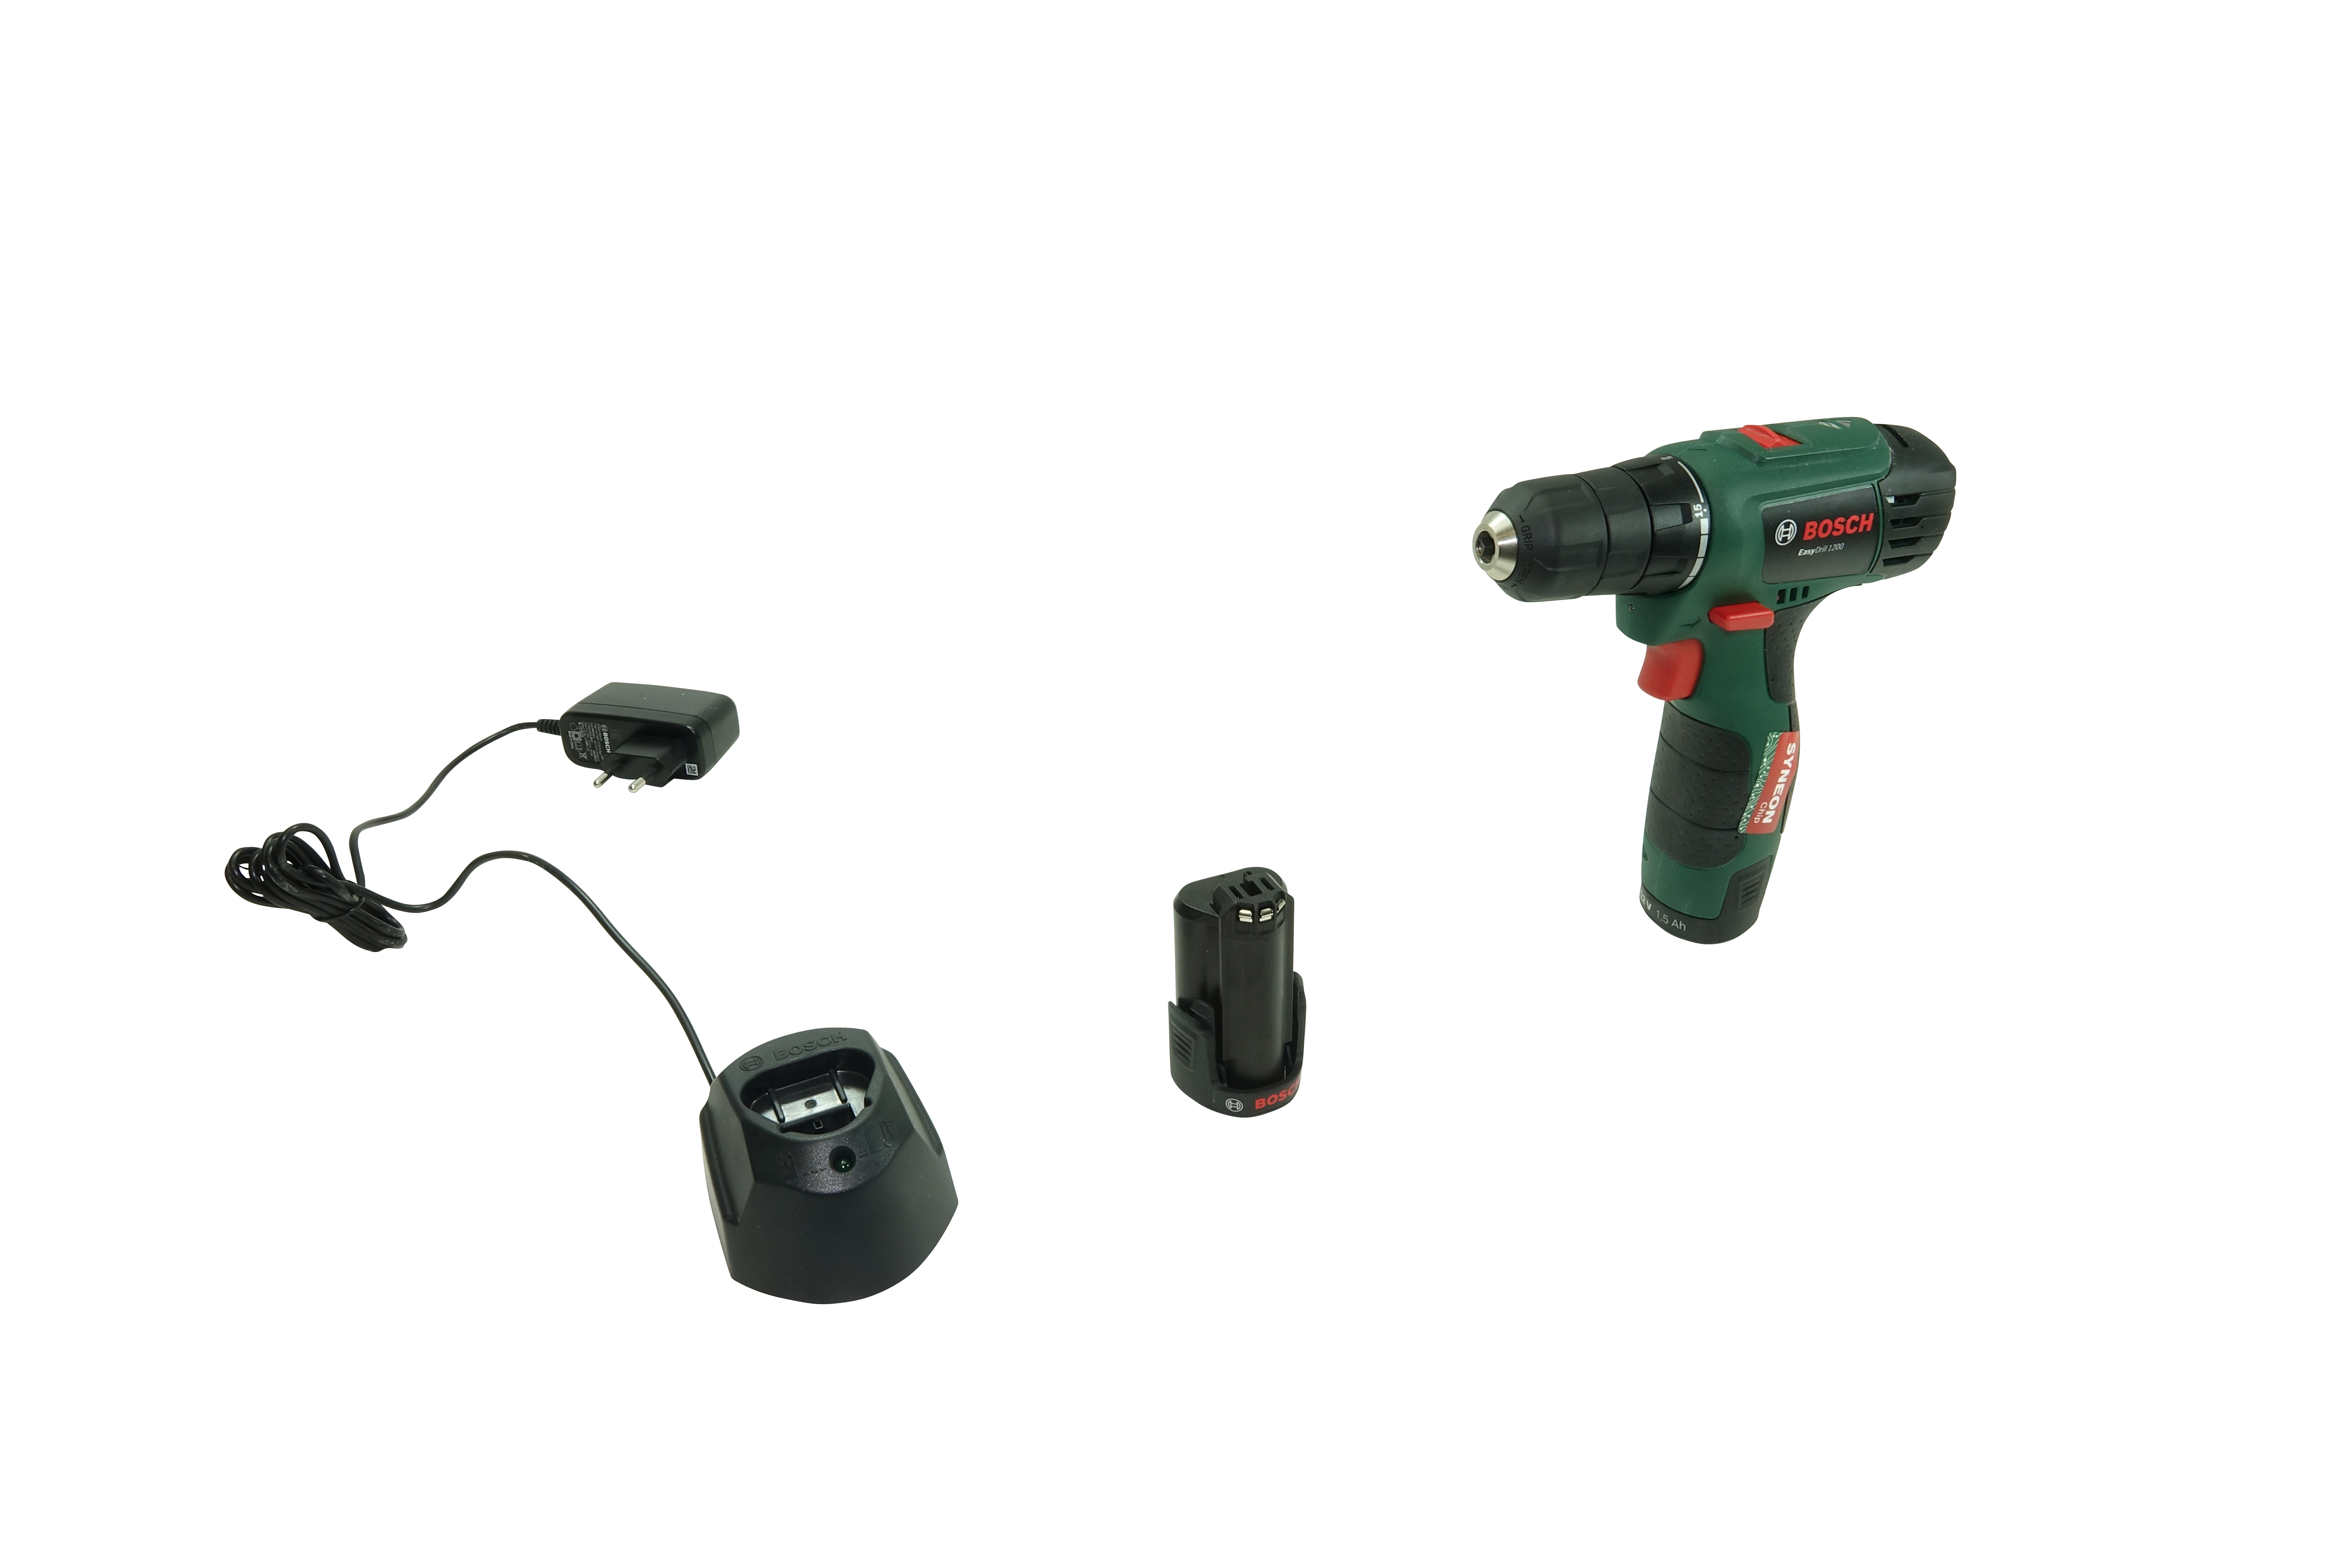 Bosch EasyDrill 1200 - Vue ave le chargeur